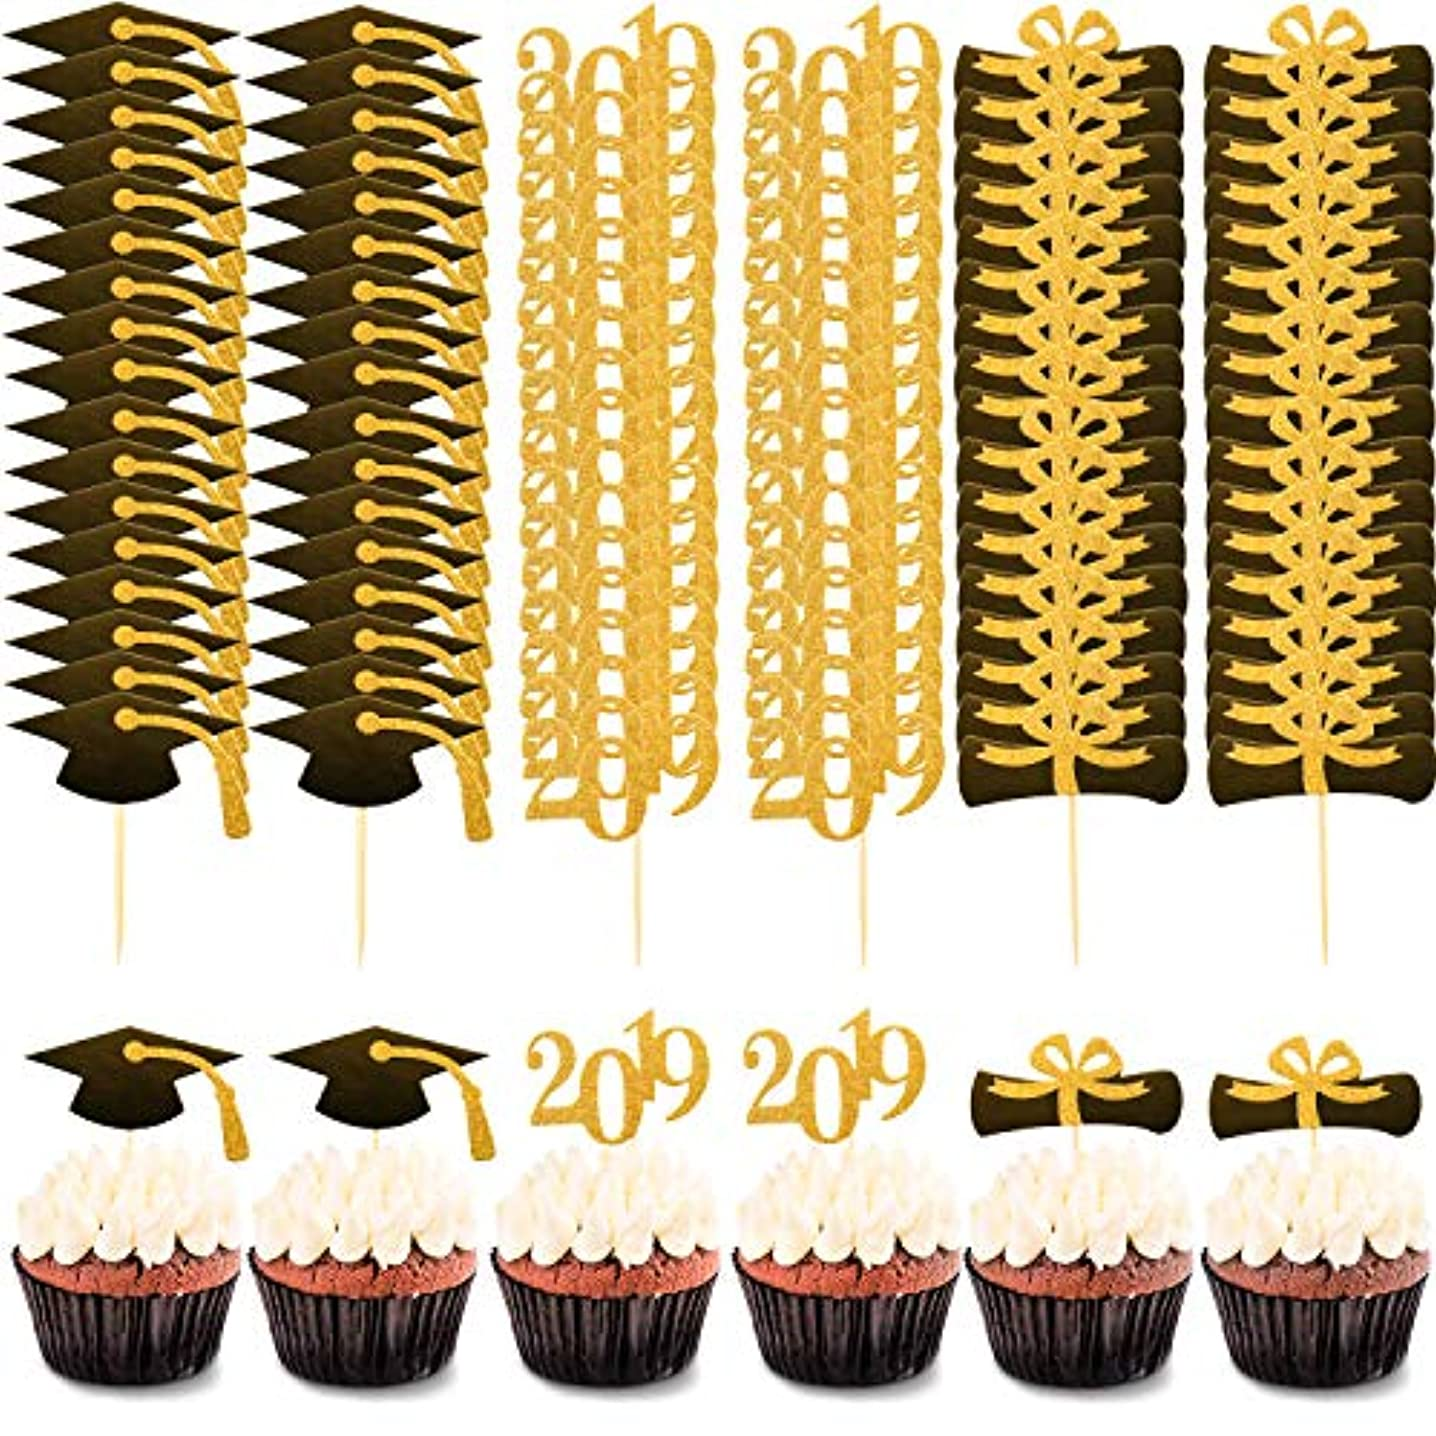 60 Pieces Graduation Cupcake Toppers Class of 2019 Cupcake Topper Picks with Graduation Cap Design for Graduation Party Decoration Supplies (Style Set 3)